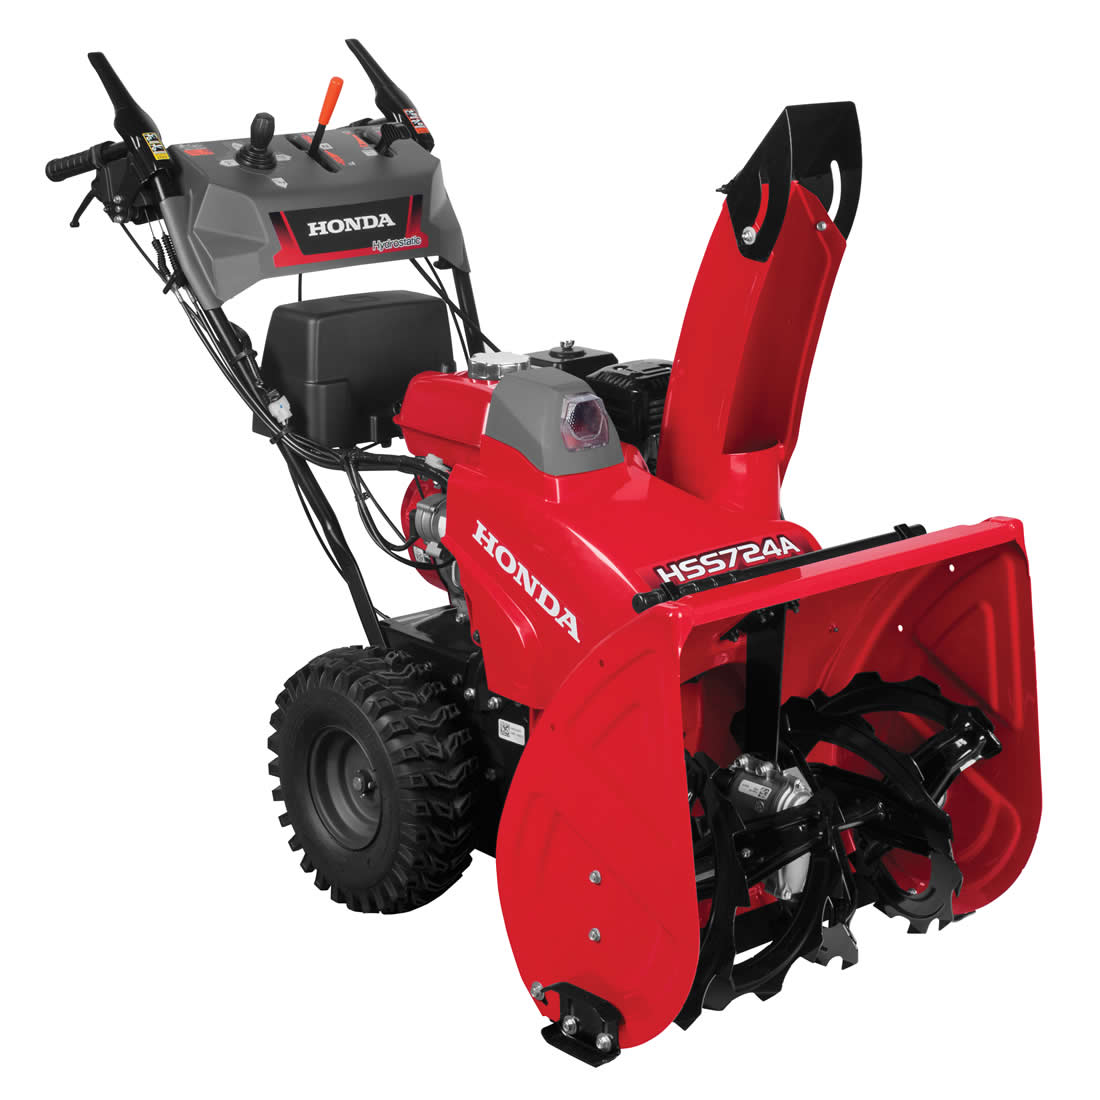 Picture of Honda HSS724AAWD Snow Blower, Gas, 196 cc Engine Displacement, 4-Cycle OHV Engine, 2 -Stage, 49 ft Throw